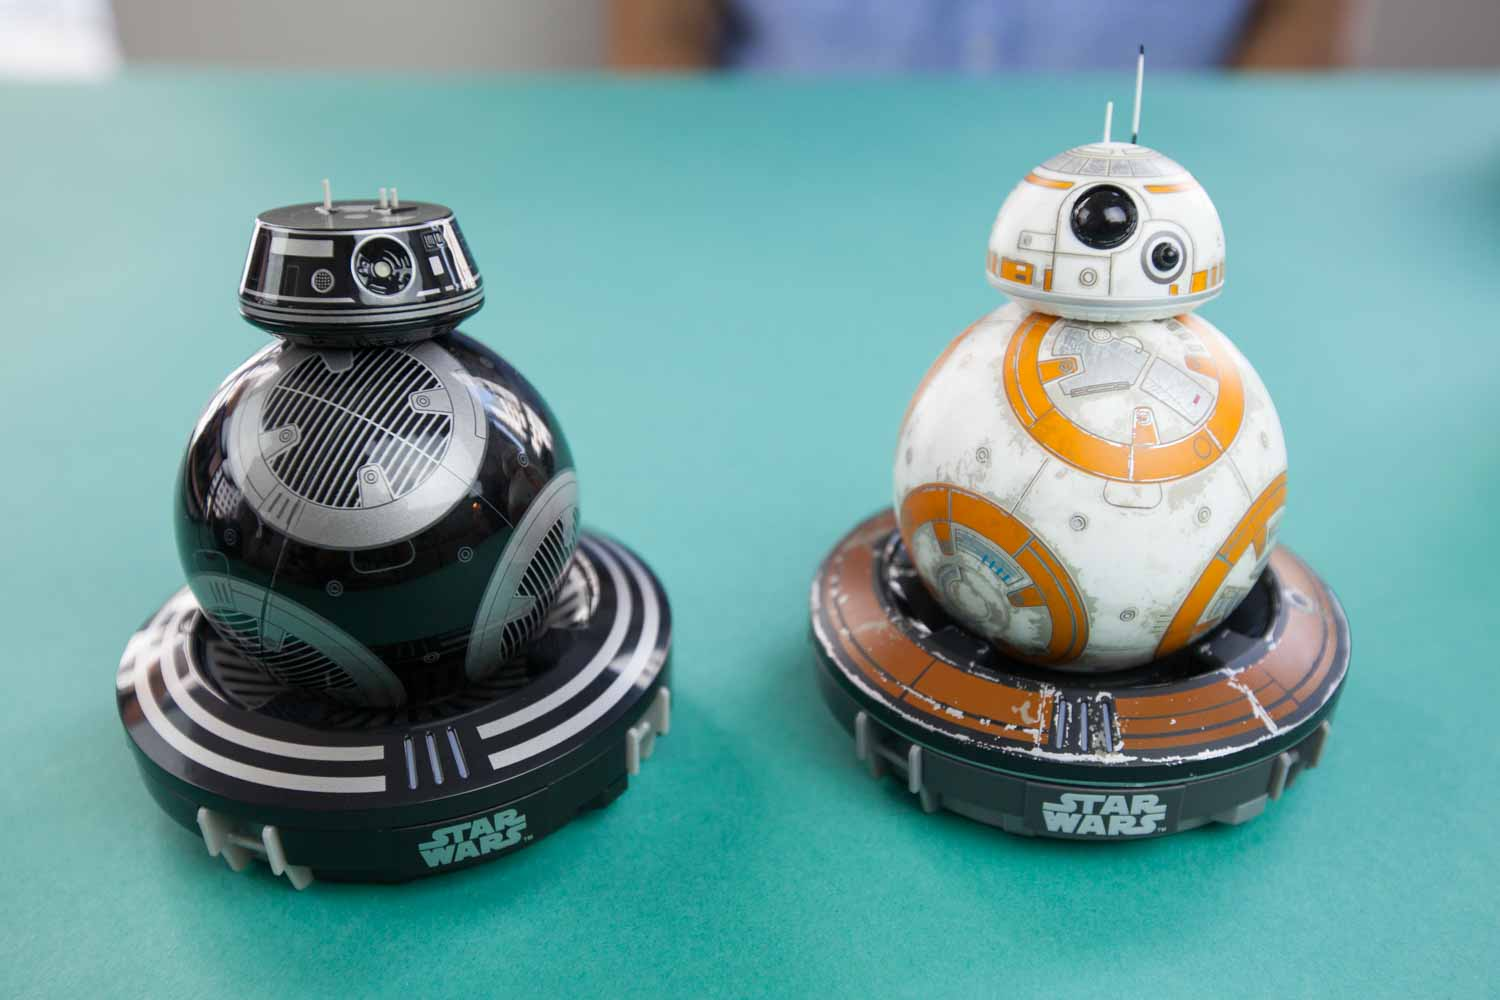 Sphero bb-8 and bb-9e star wars toys